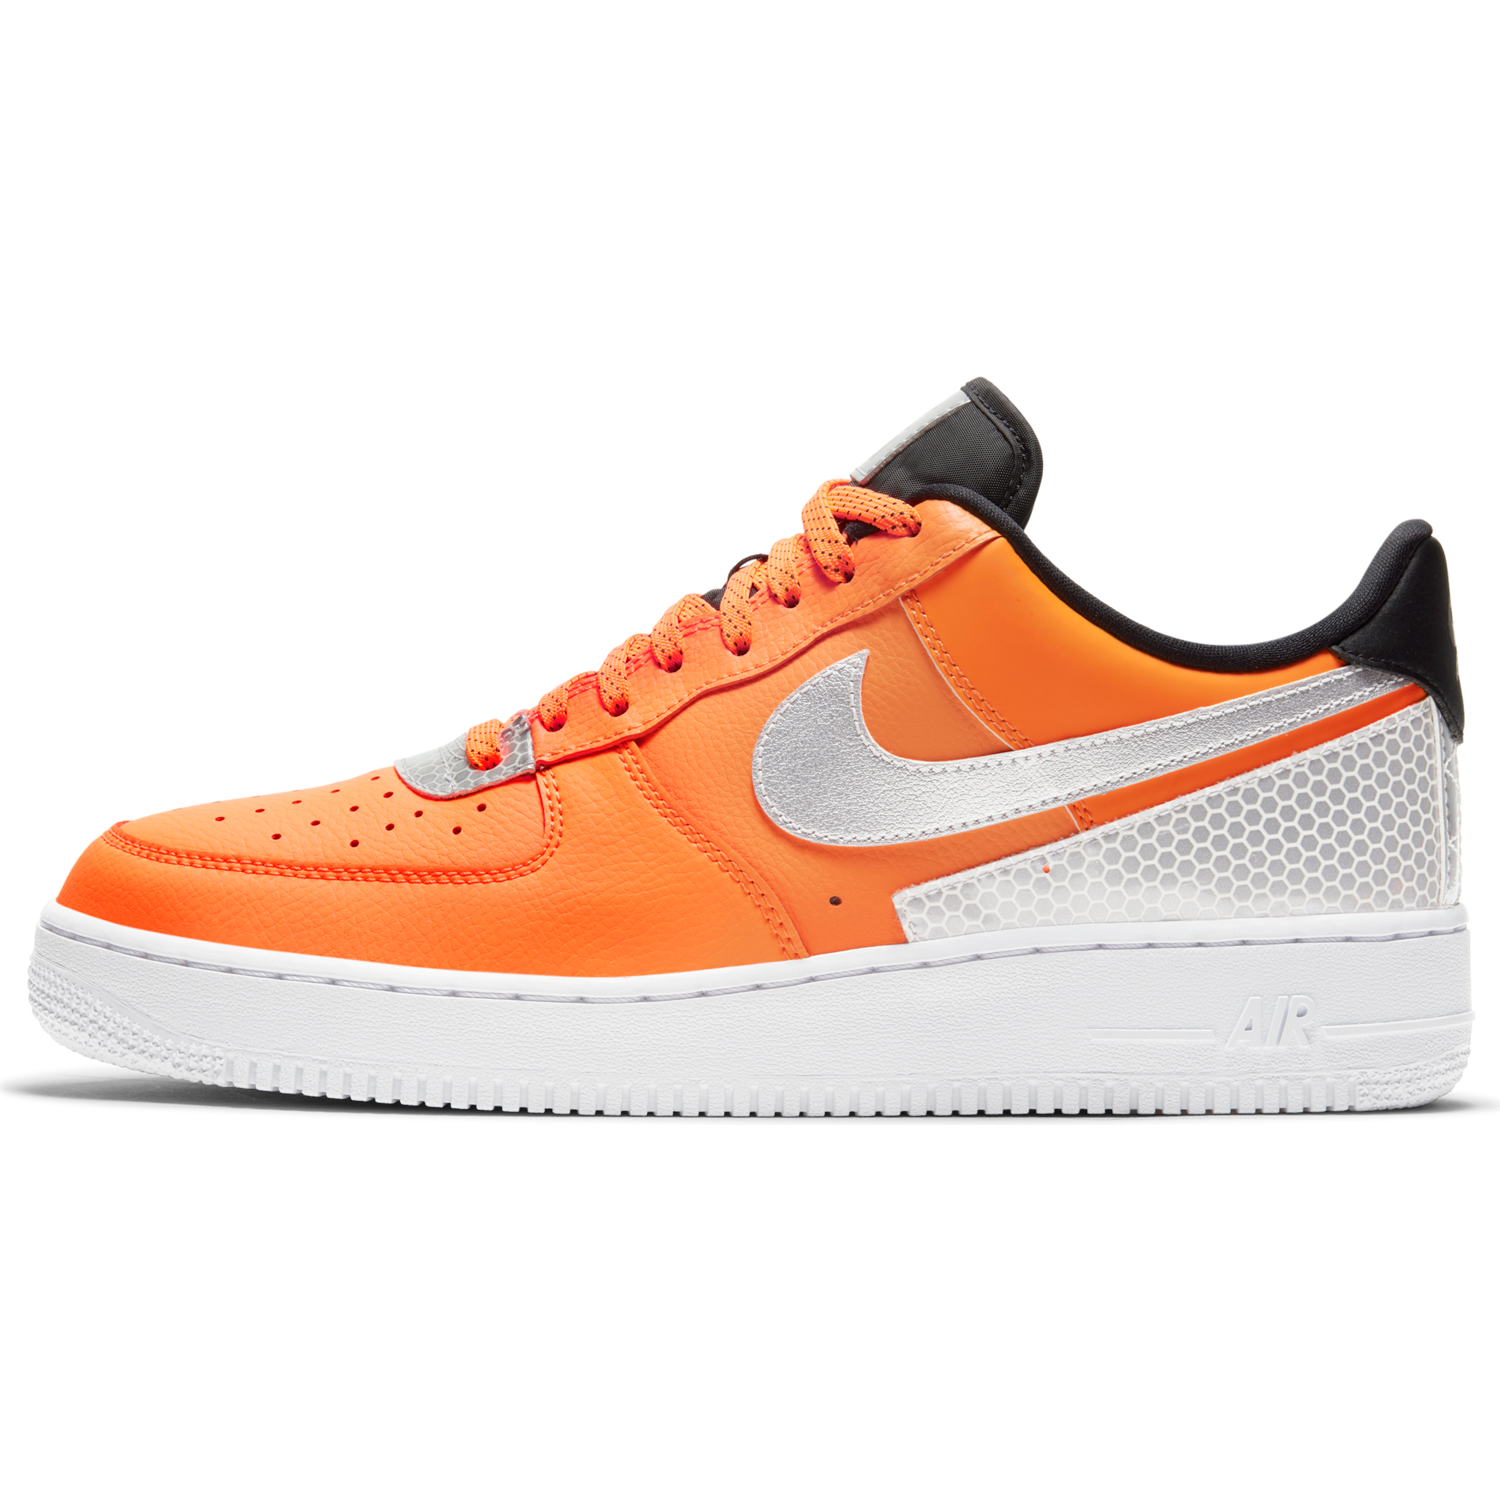 NIKE M'S FOOTWEAR AIR FORCE 1 '07 LV8 - TOTAL ORANGE